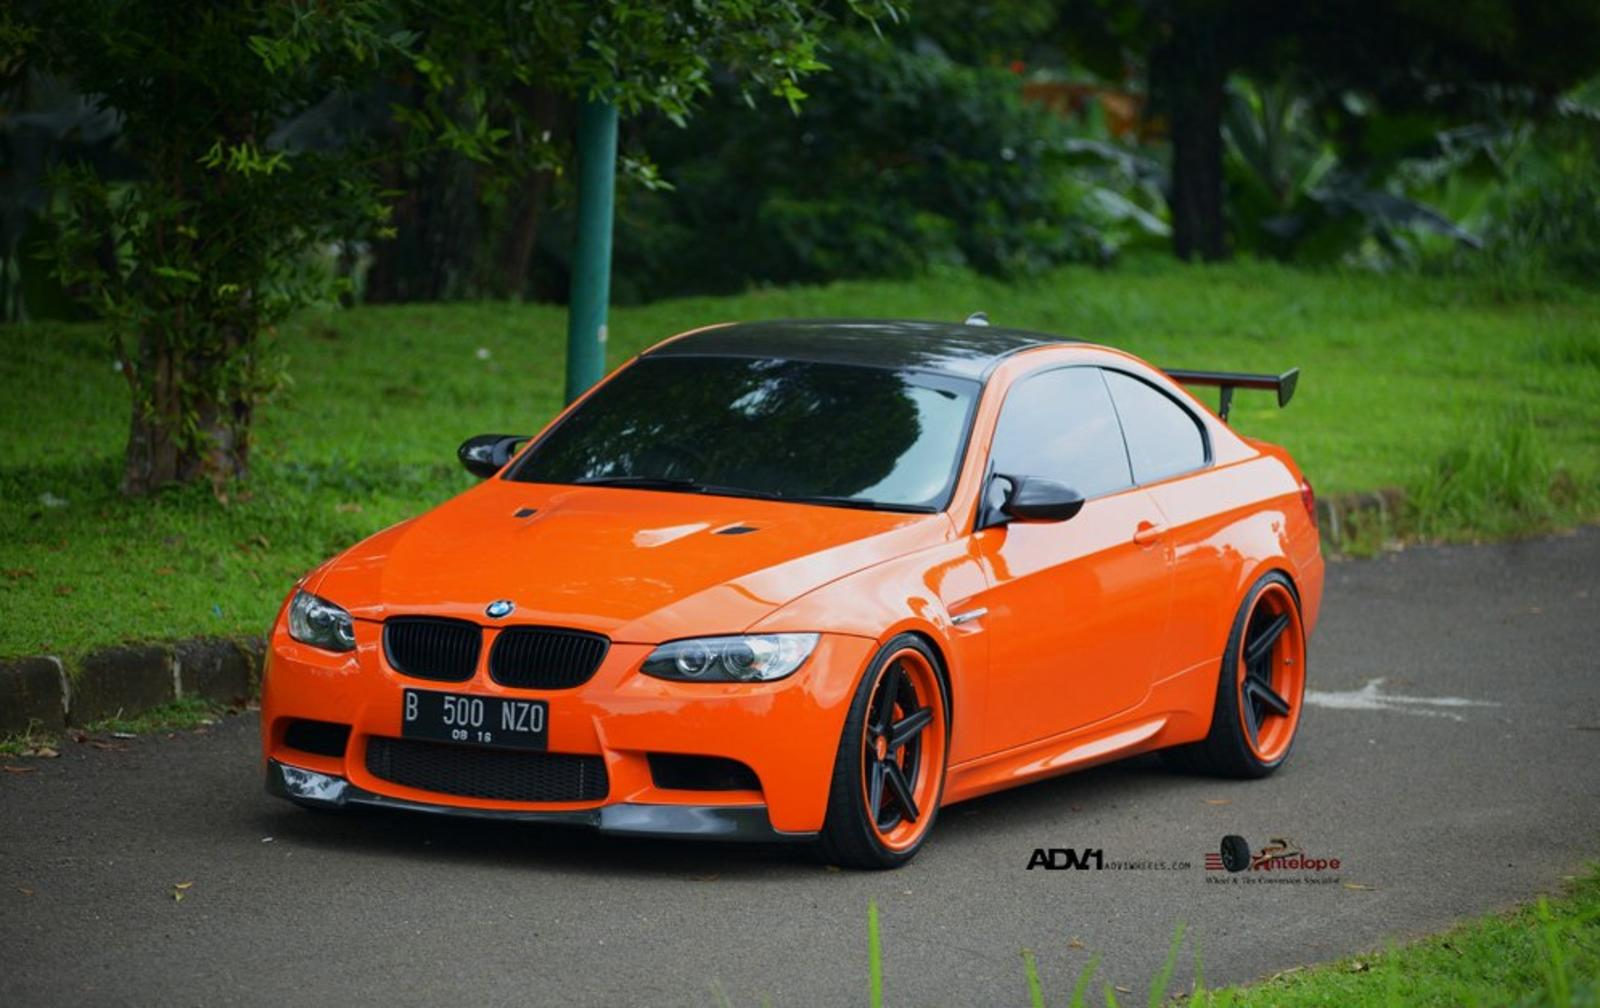 2013 Bmw M3 Halloween Orange By Antelope Ban Review Top